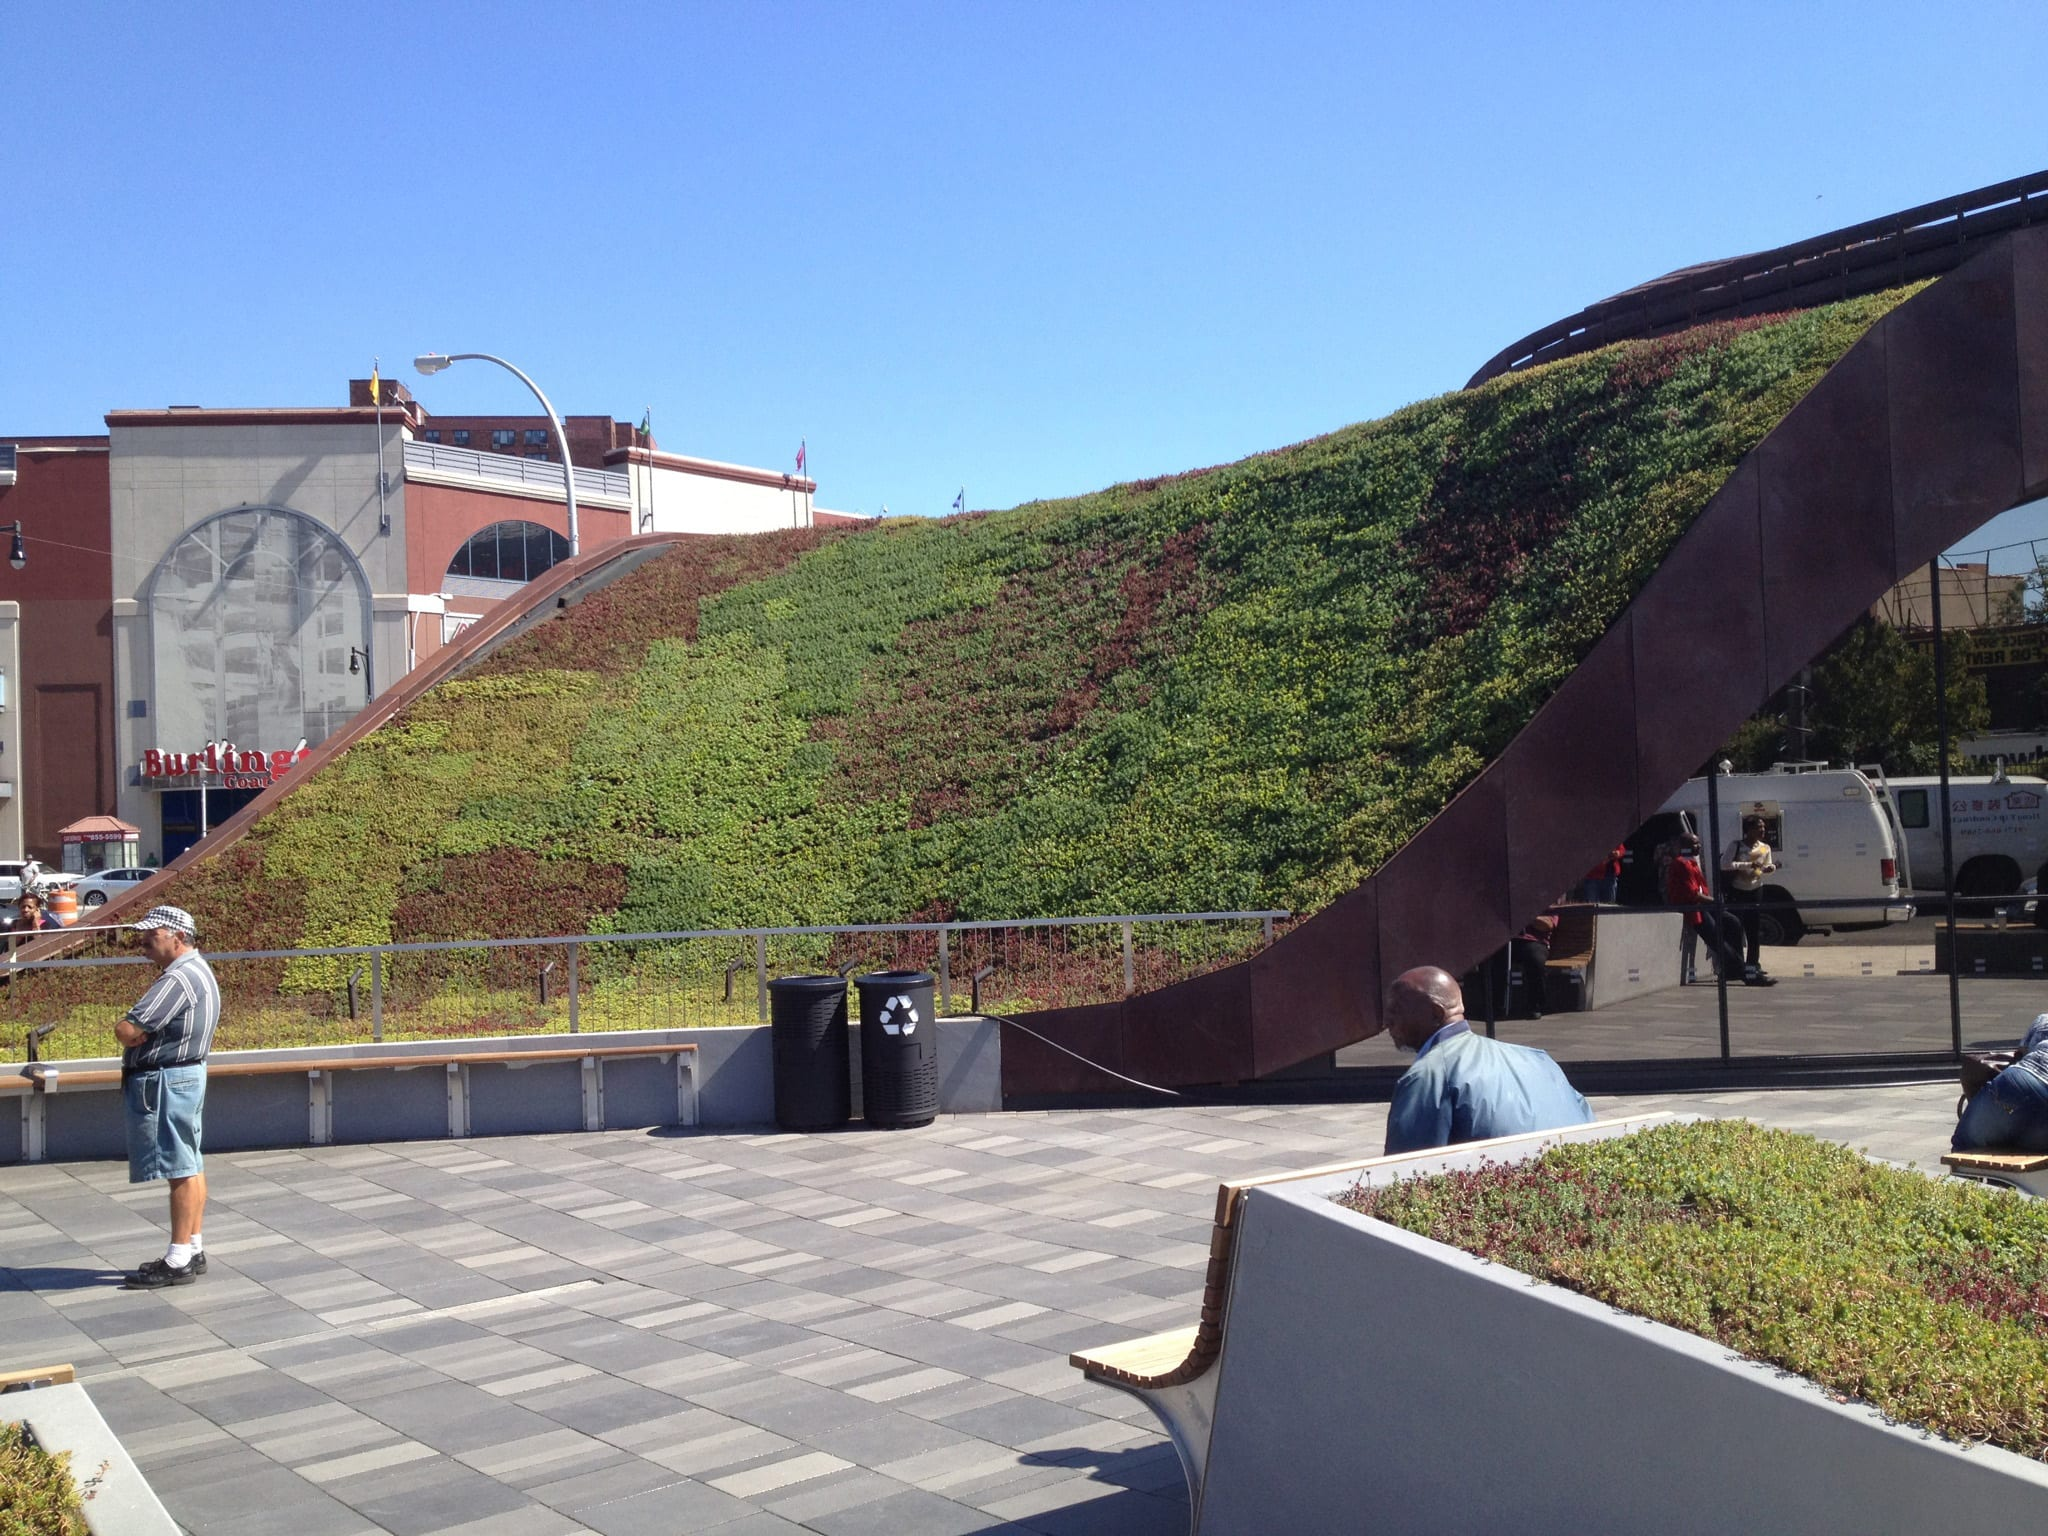 Barclays Center Green Roof Over Subway Entrance